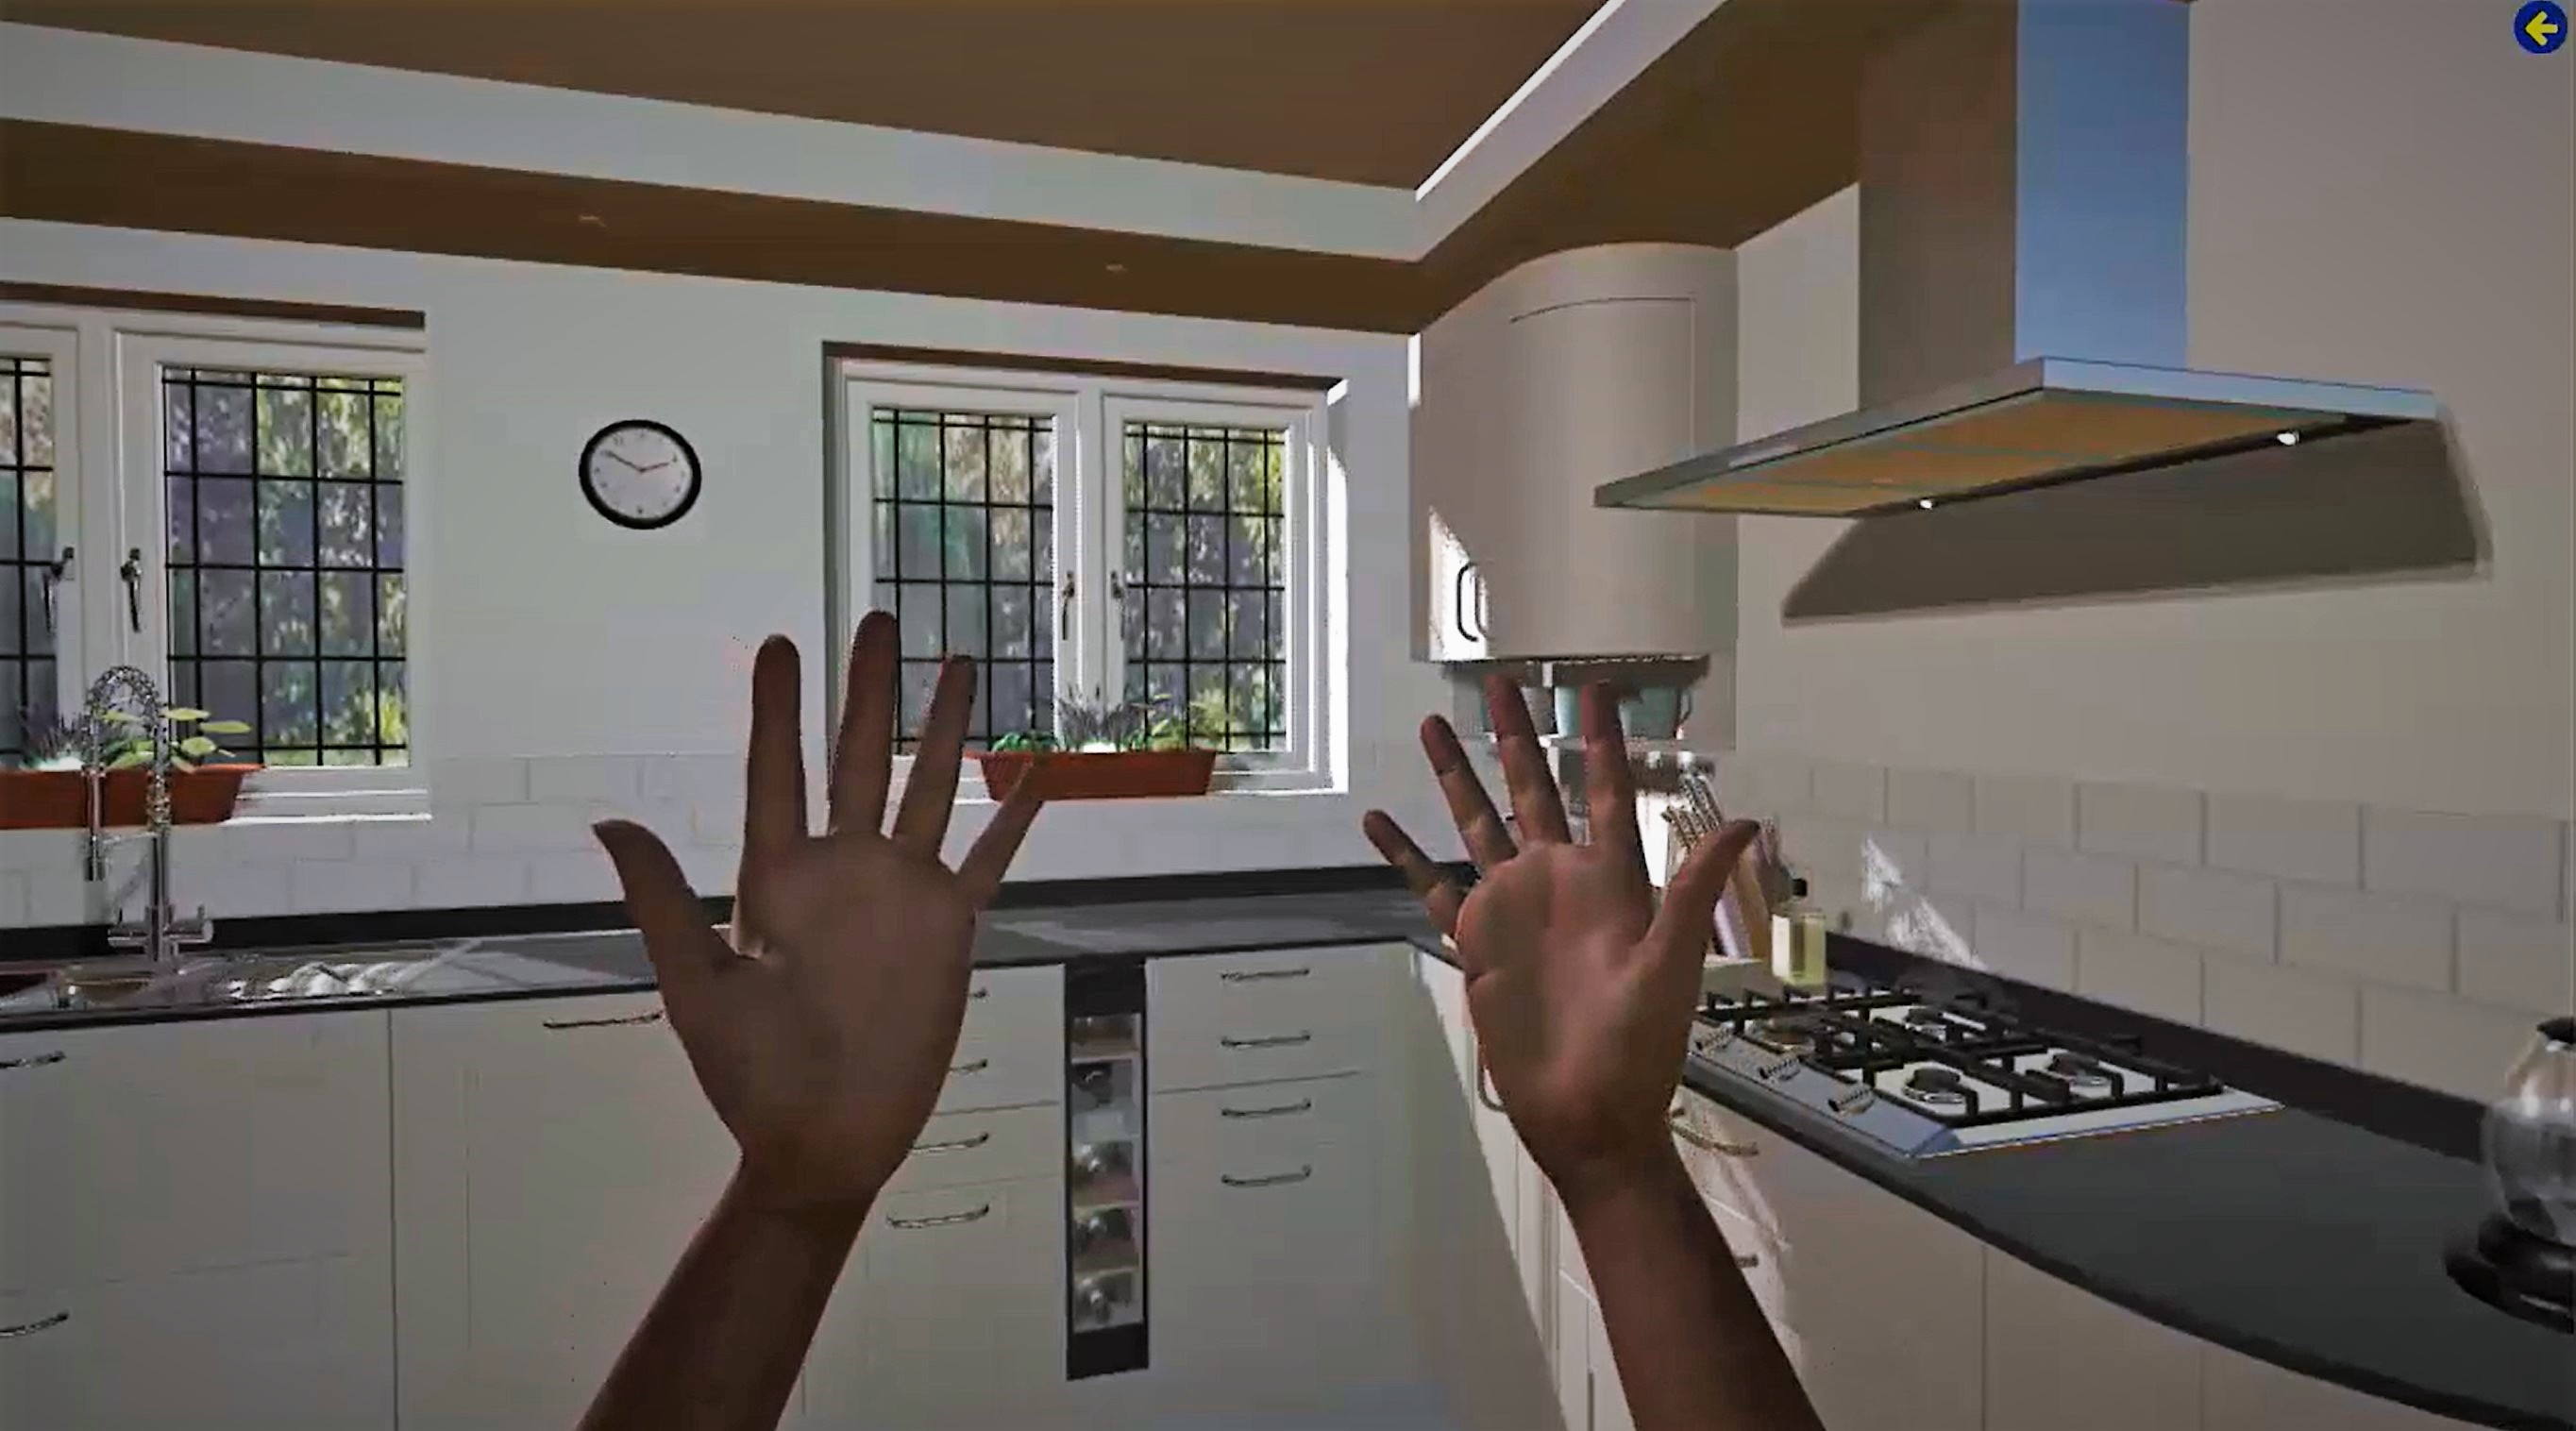 4D Theatre Kitchen With Hands